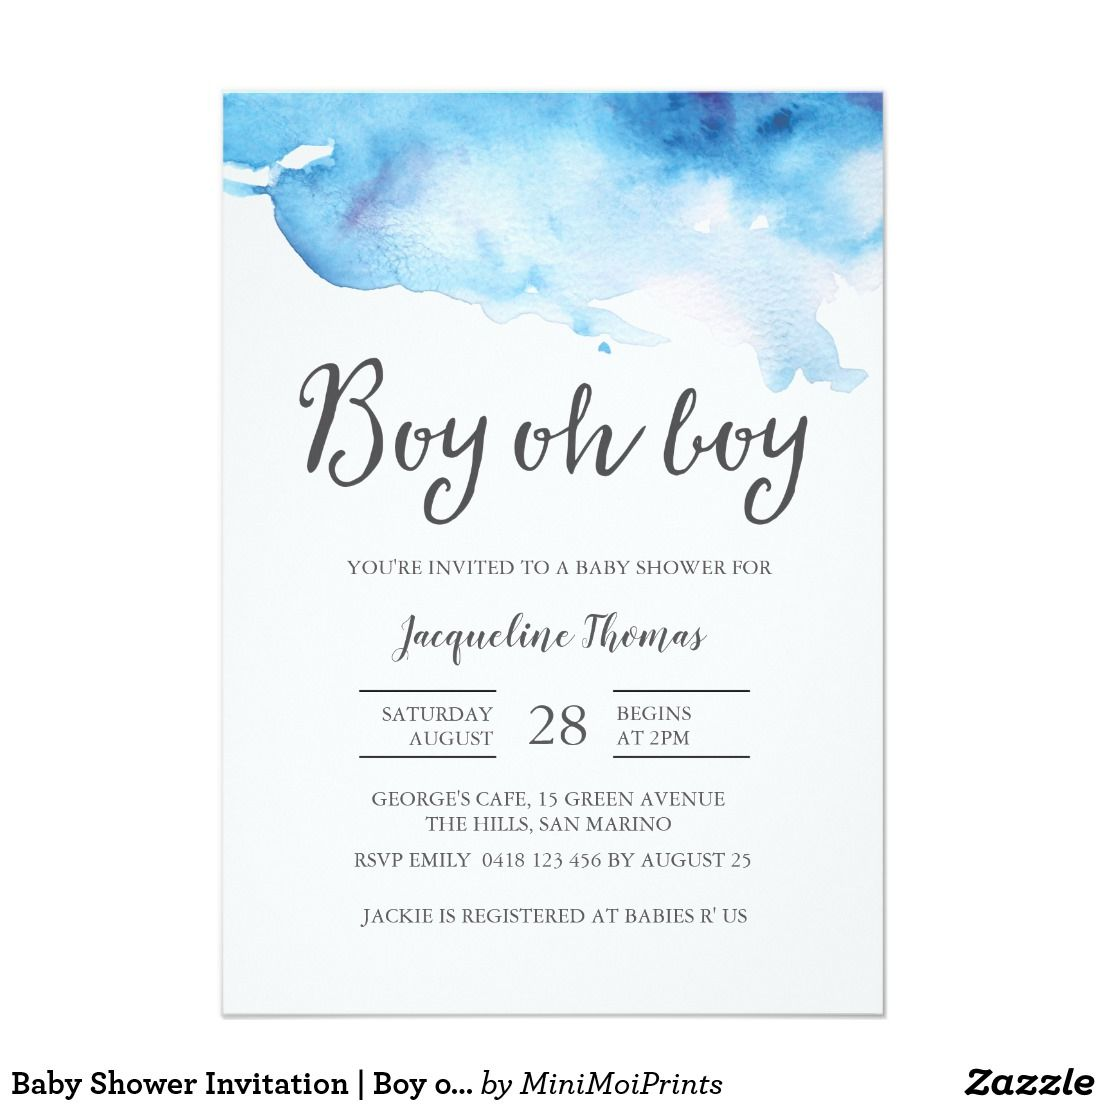 Baby Shower Invitation | Boy oh boy watercolour | Shower invitations ...